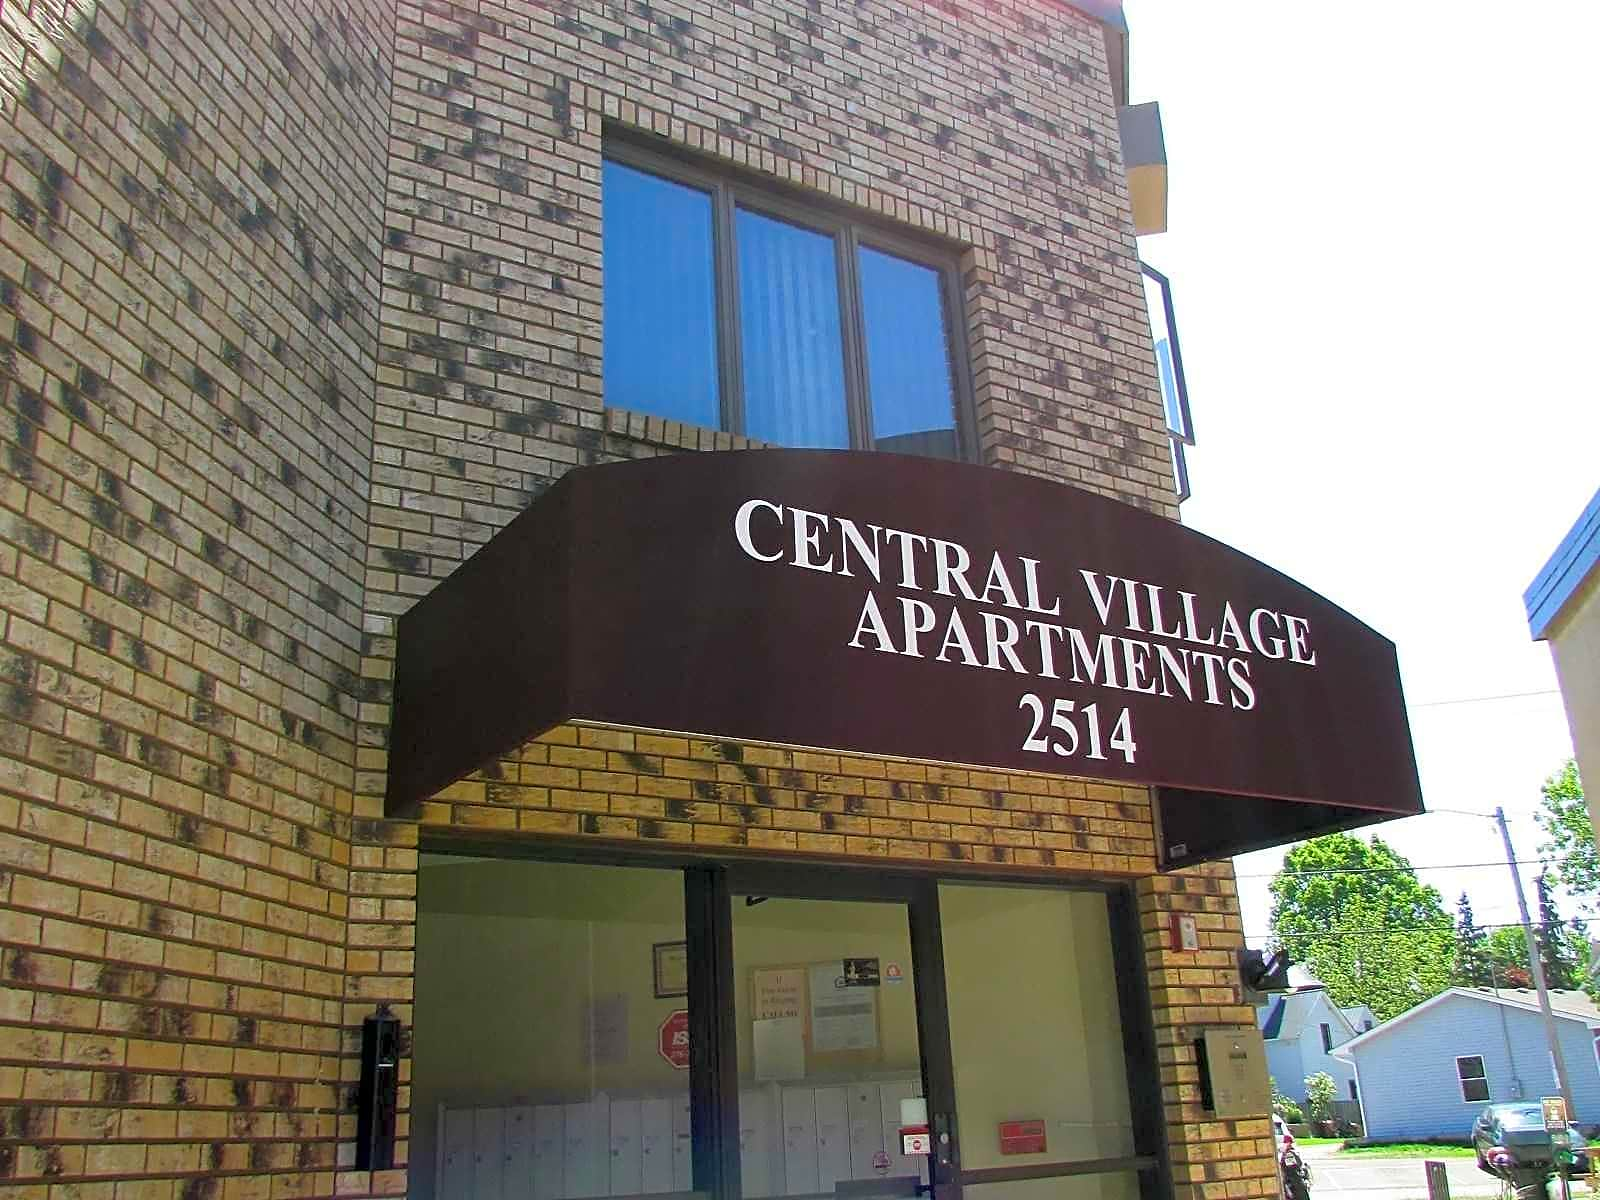 Apartments Near Century Central Village Apartments for Century College Students in  White Bear Lake, MN